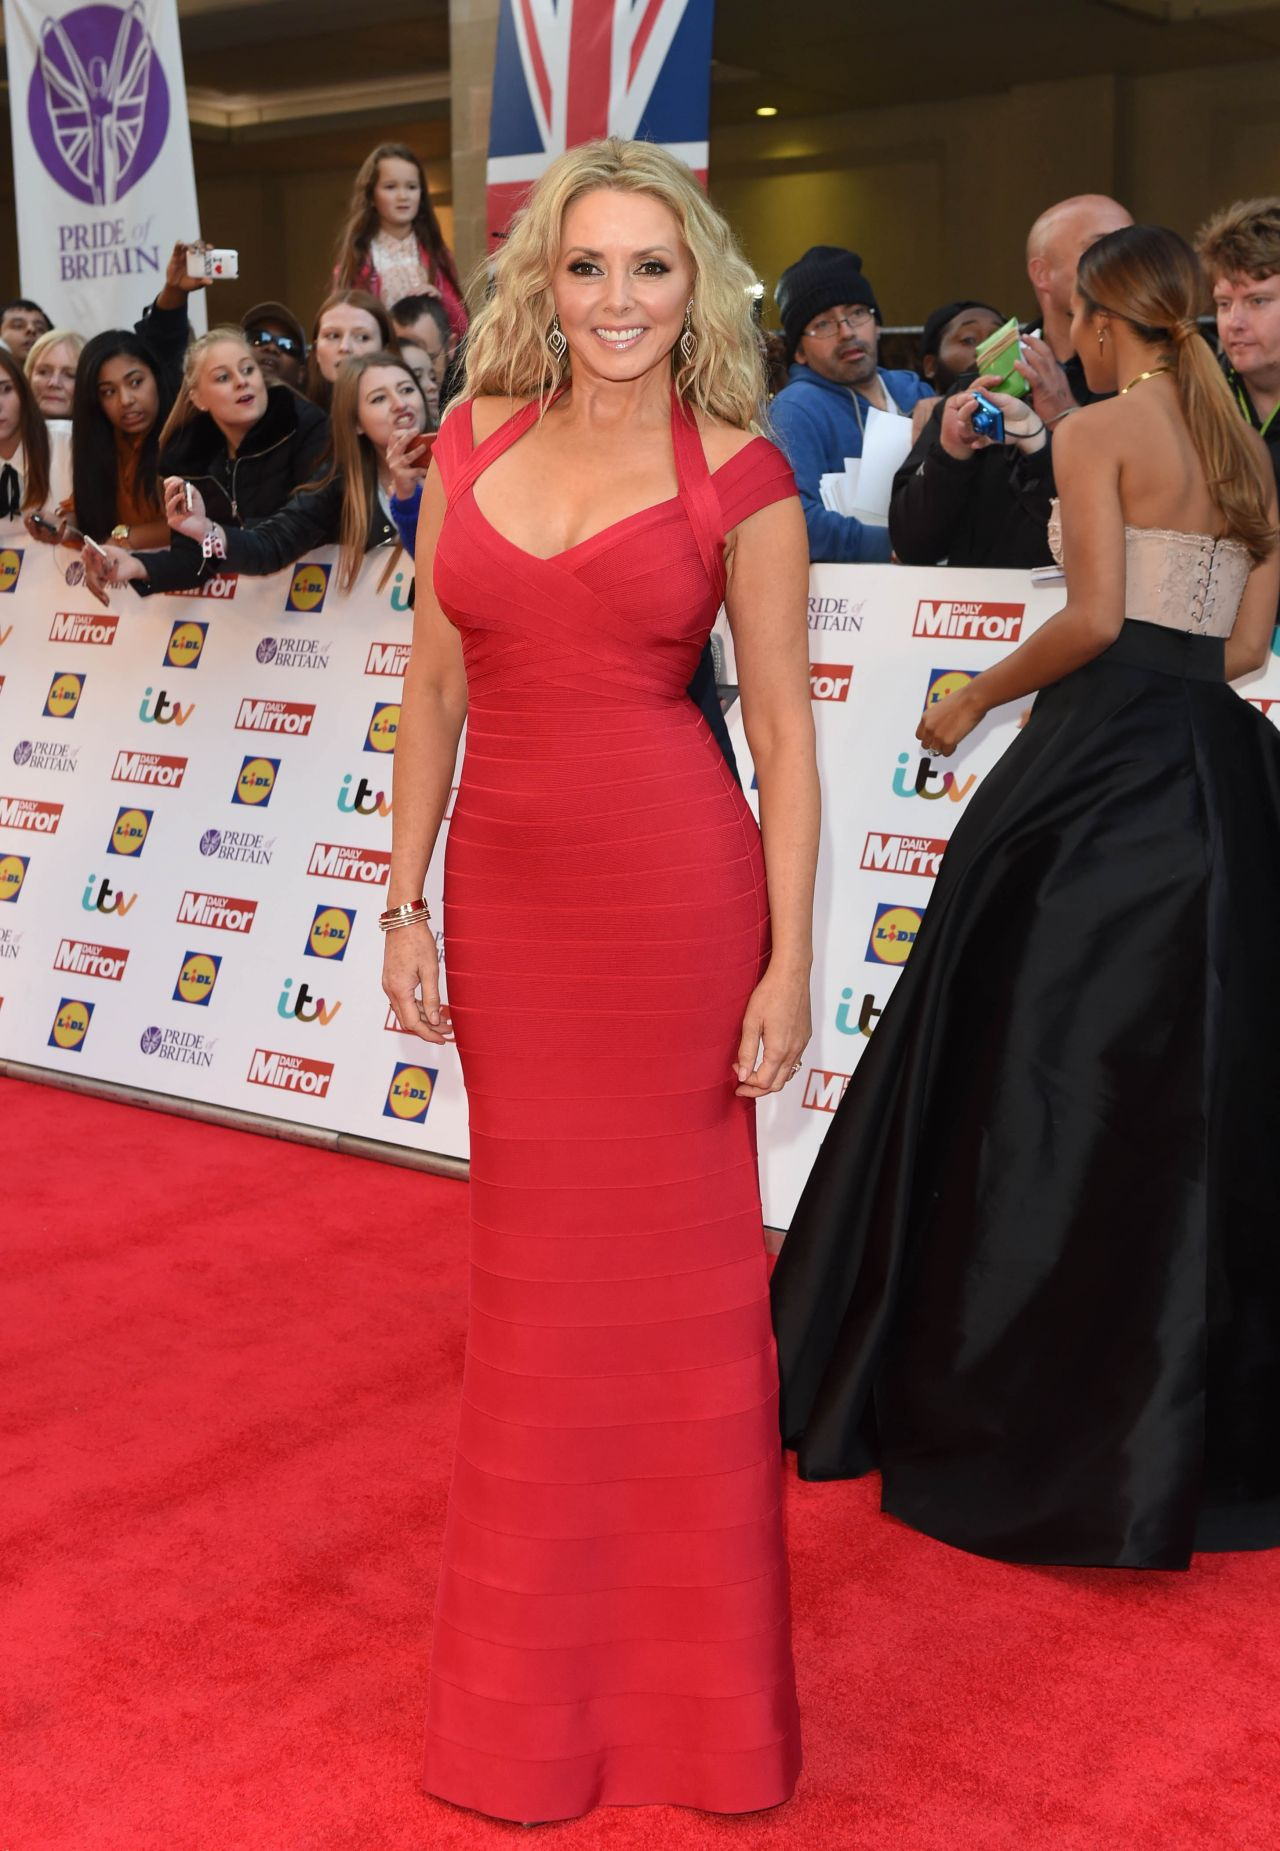 carol-vorderman-pride-of-britain-awards-2015-in-london_1